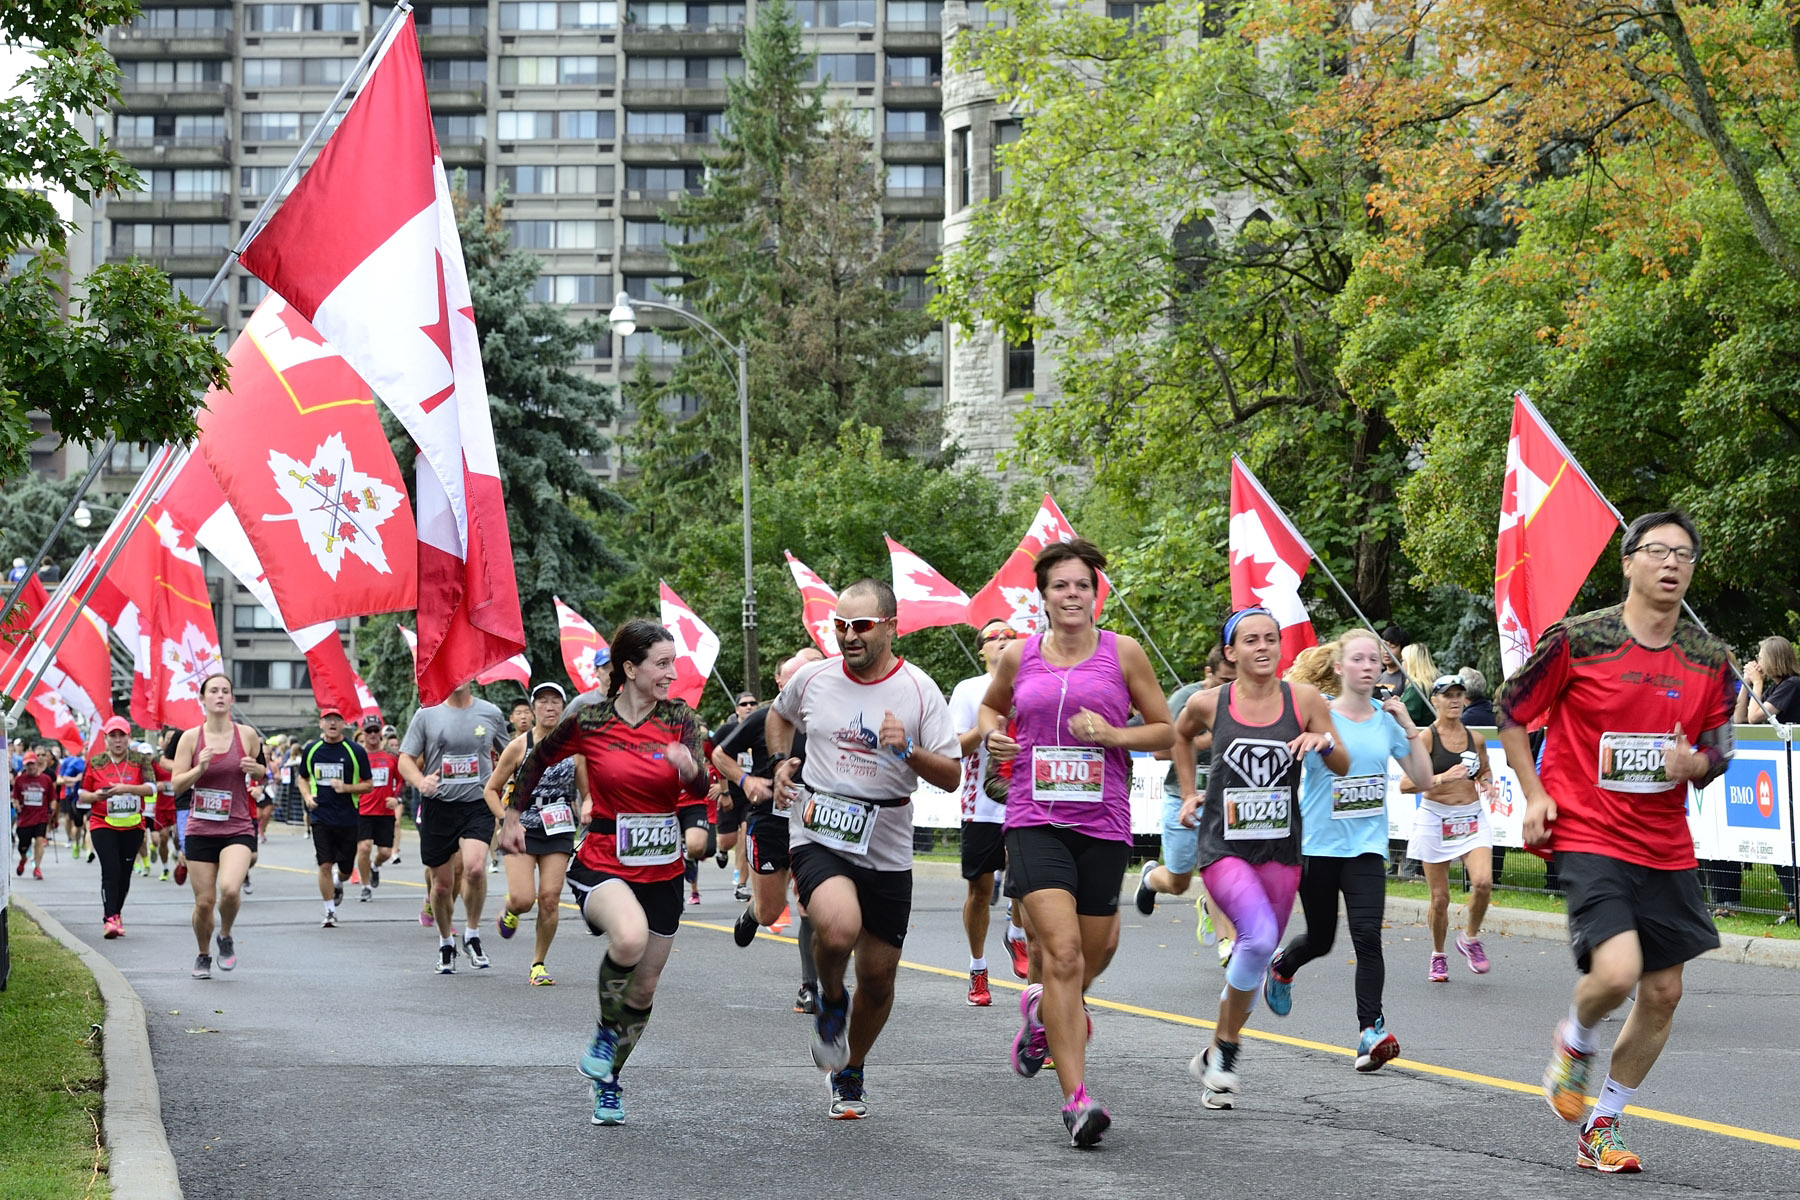 Canada Army Run is a unique running event in which Canadians can run, walk or roll side-by-side with members of the Canadian Armed Forces in half-marathon and five-kilometre events.